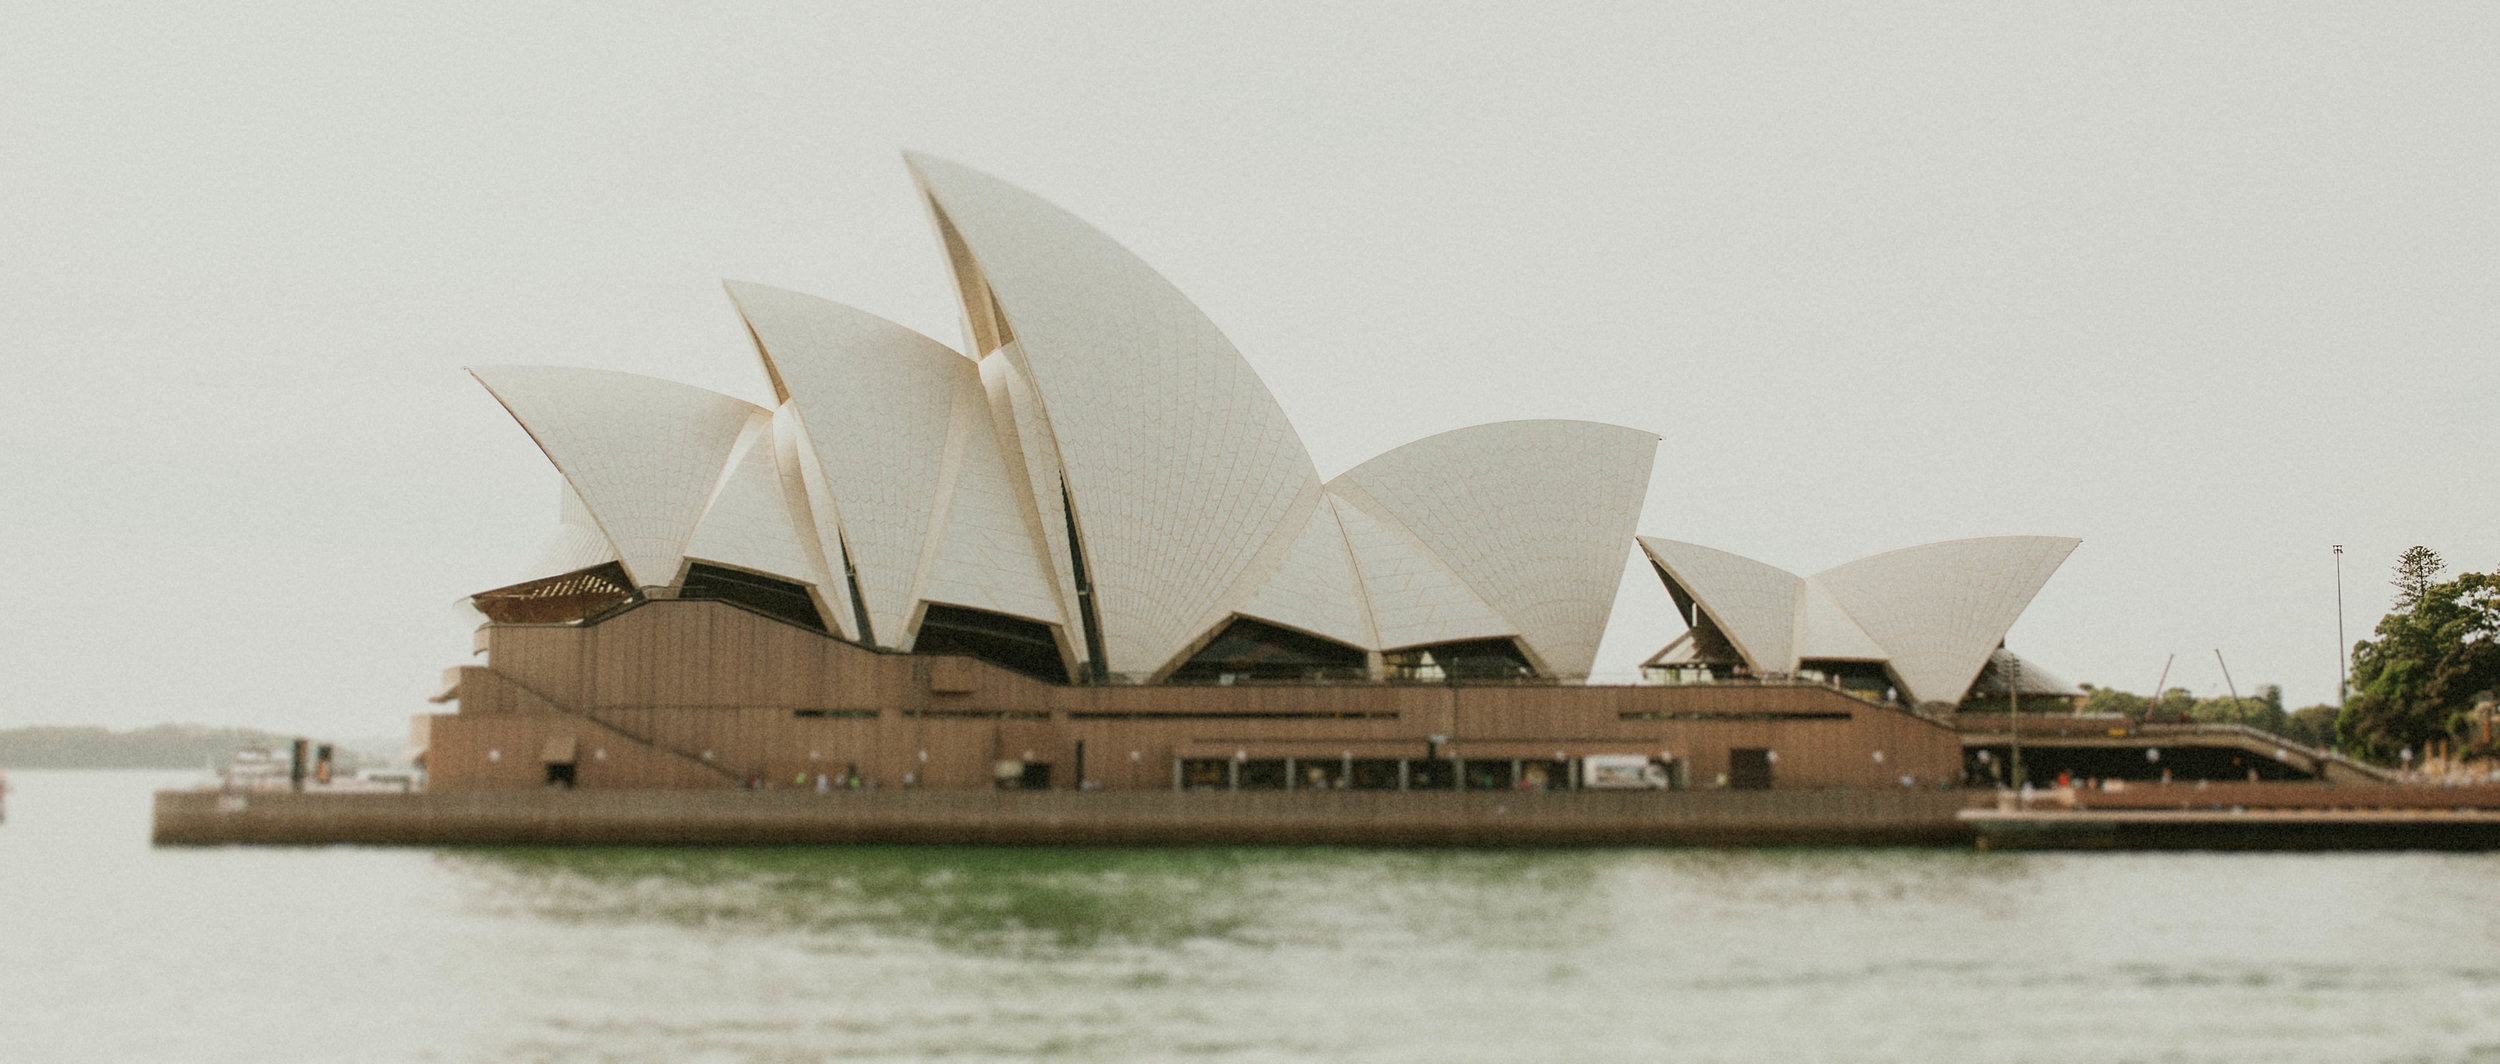 Sydney Opera House | Sydney, New South Wales | March 2016